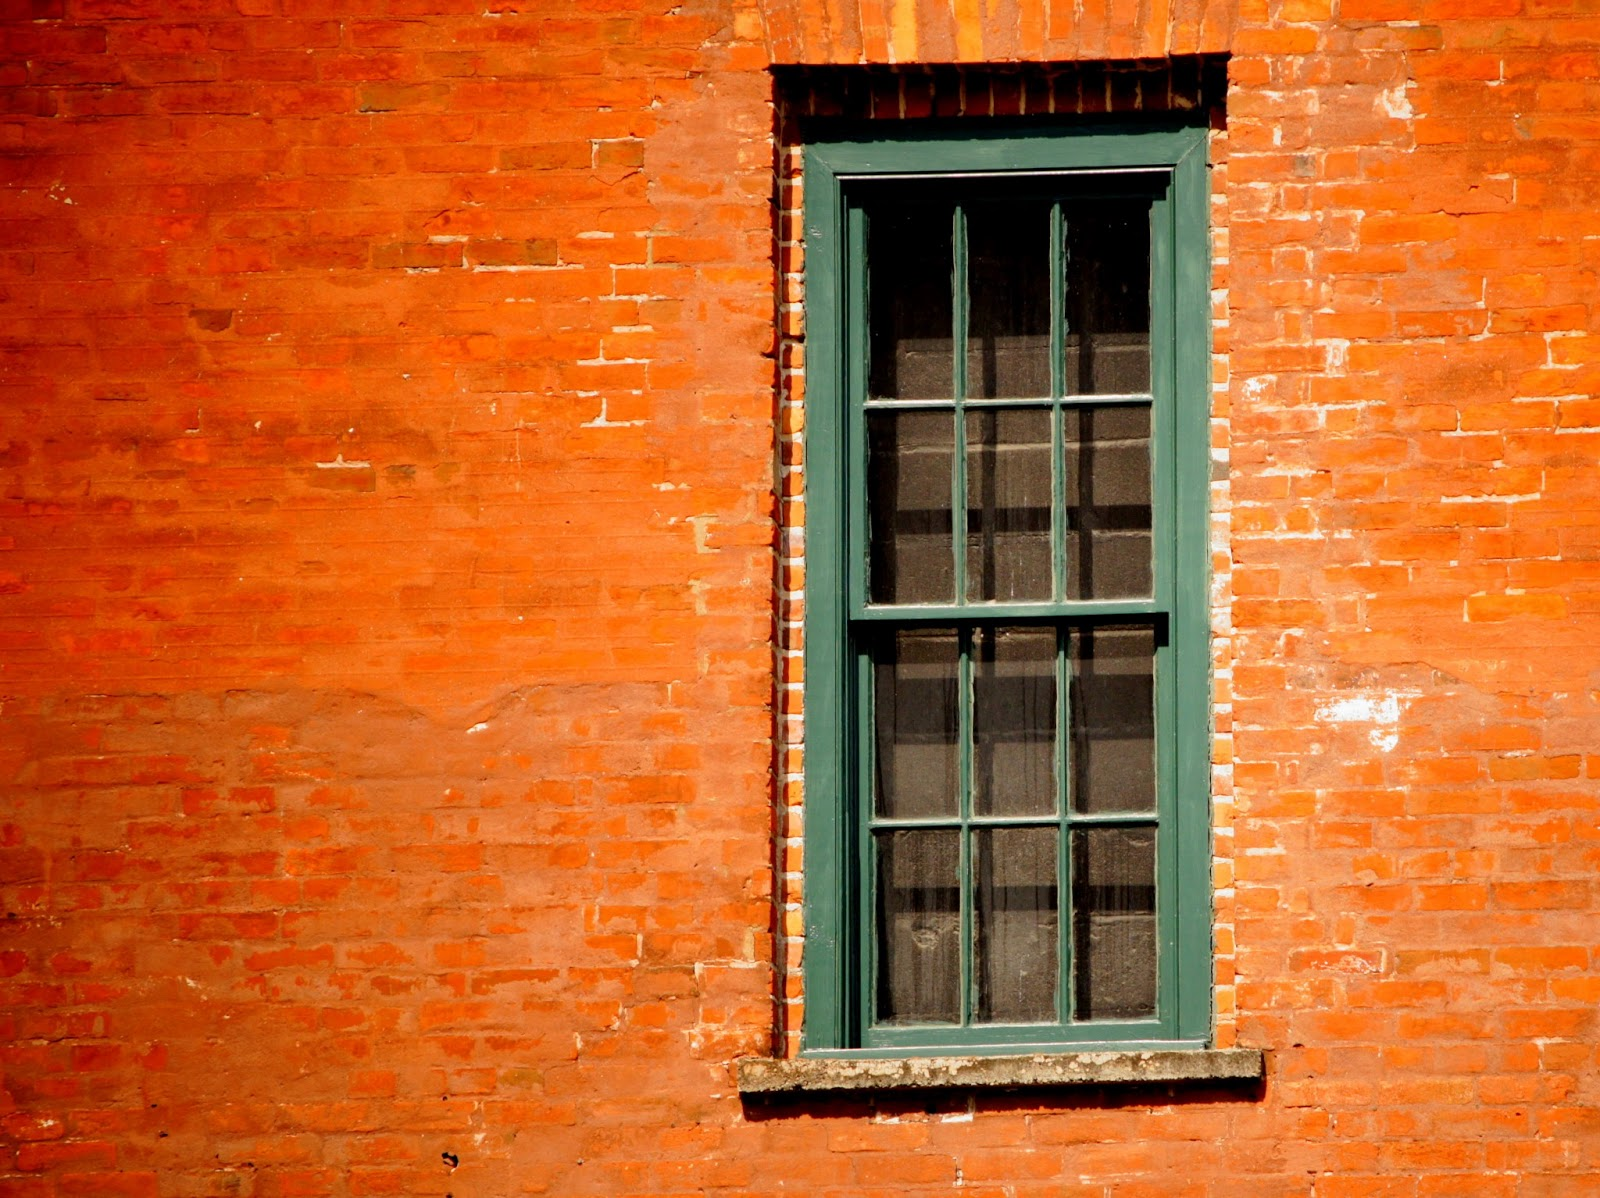 window of a red brick building